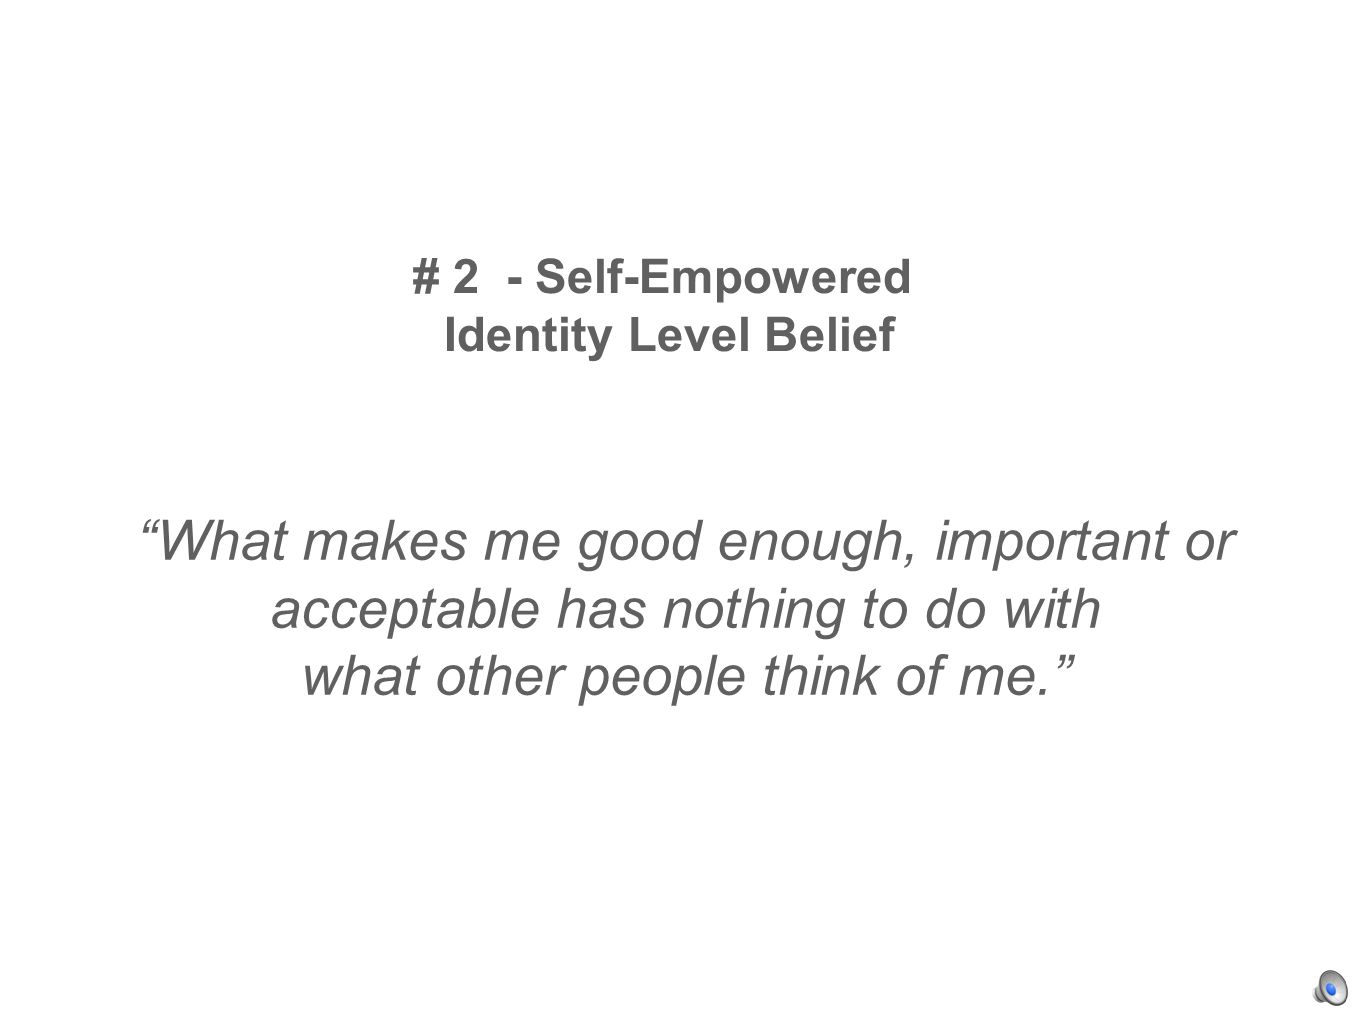 # 2 - Self-Empowered Identity Level Belief What makes me good enough, important or acceptable has nothing to do with what other people think of me.